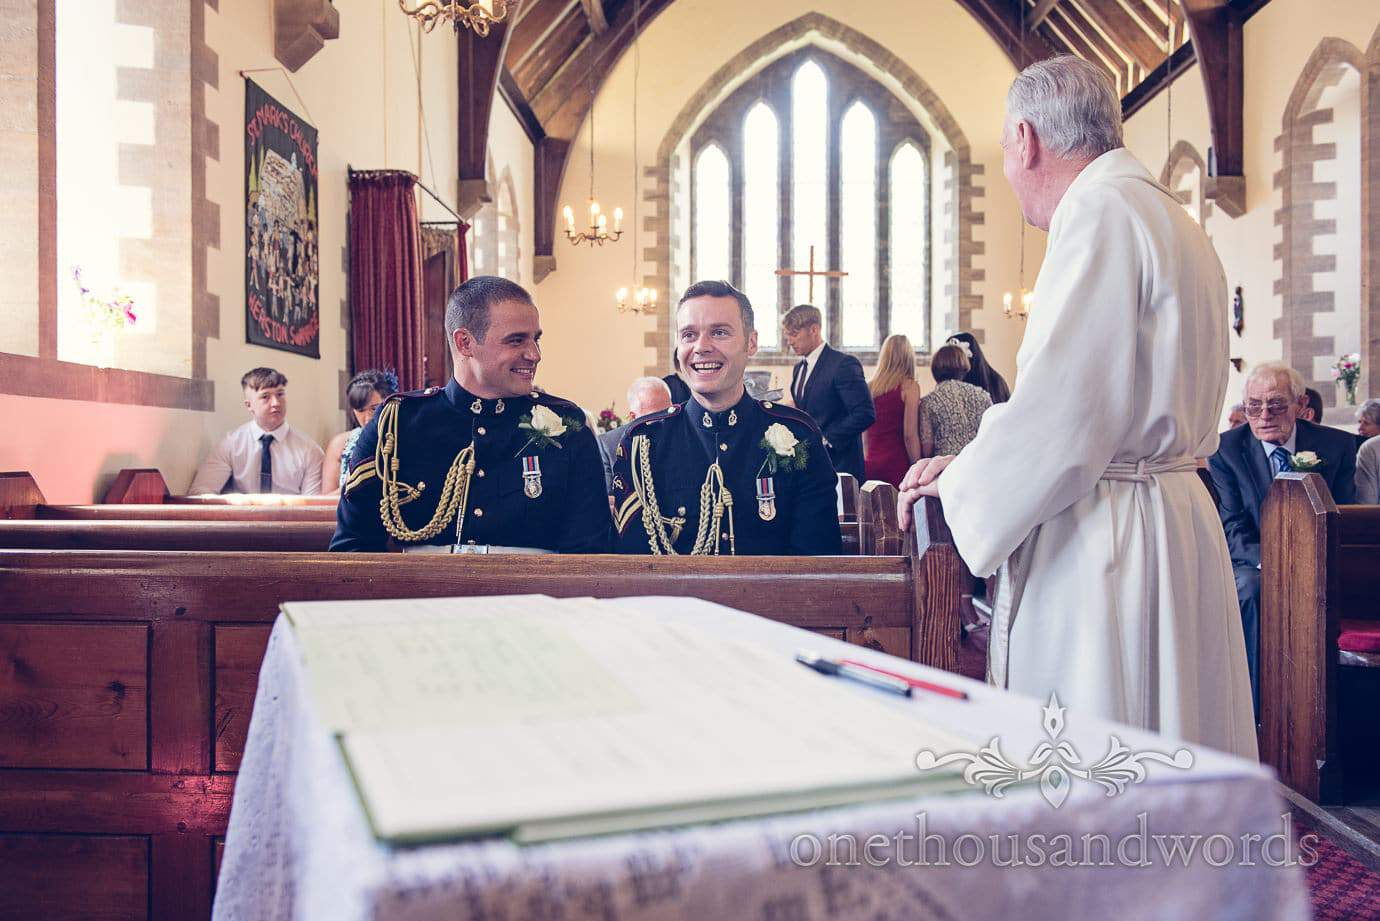 Groom and best man in military uniform laugh in church